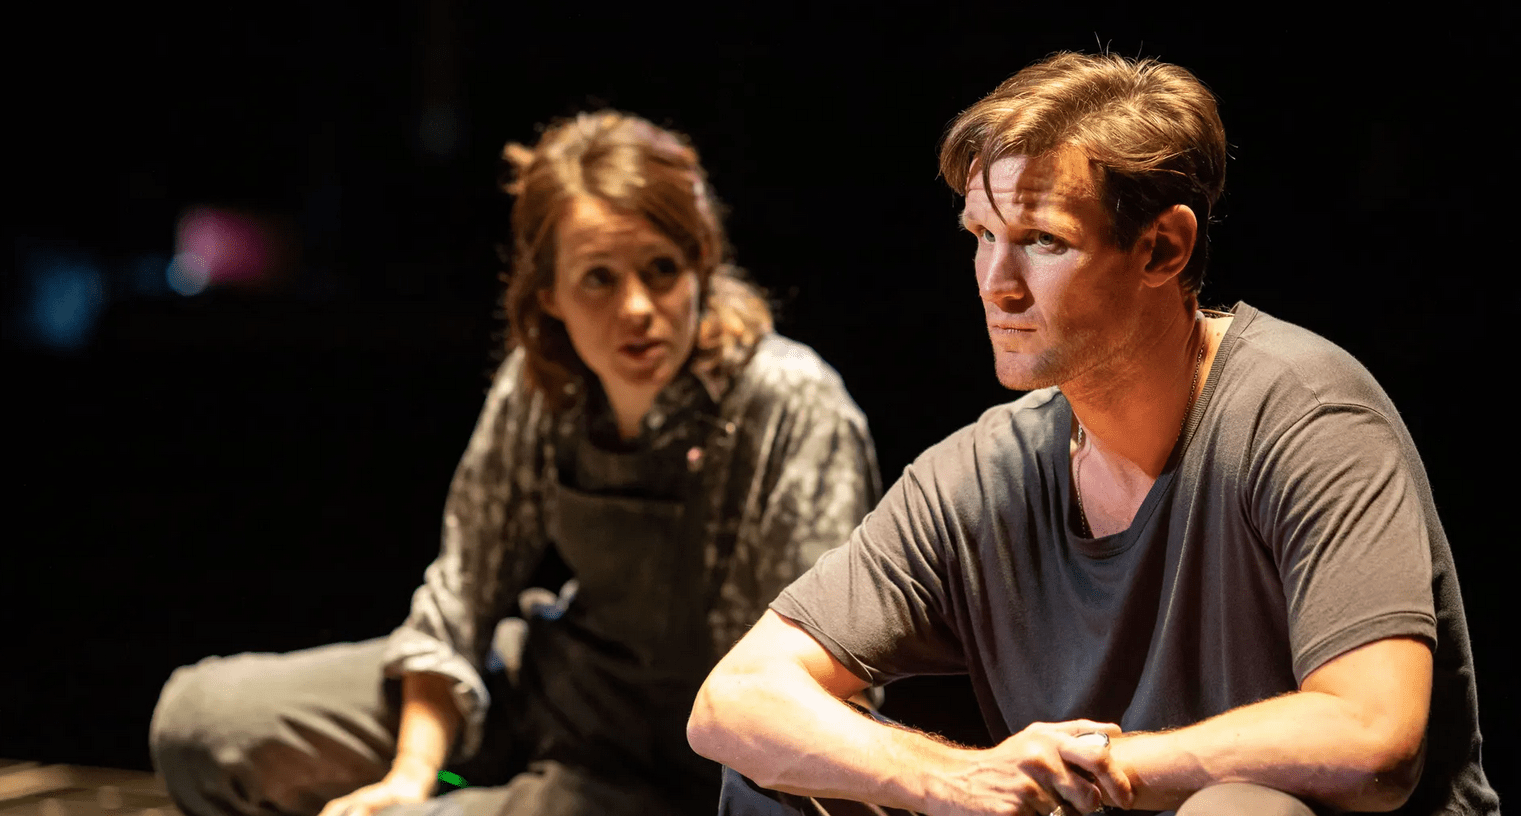 Matt Smith Muses on How the Government Can Help the Arts During Lockdown